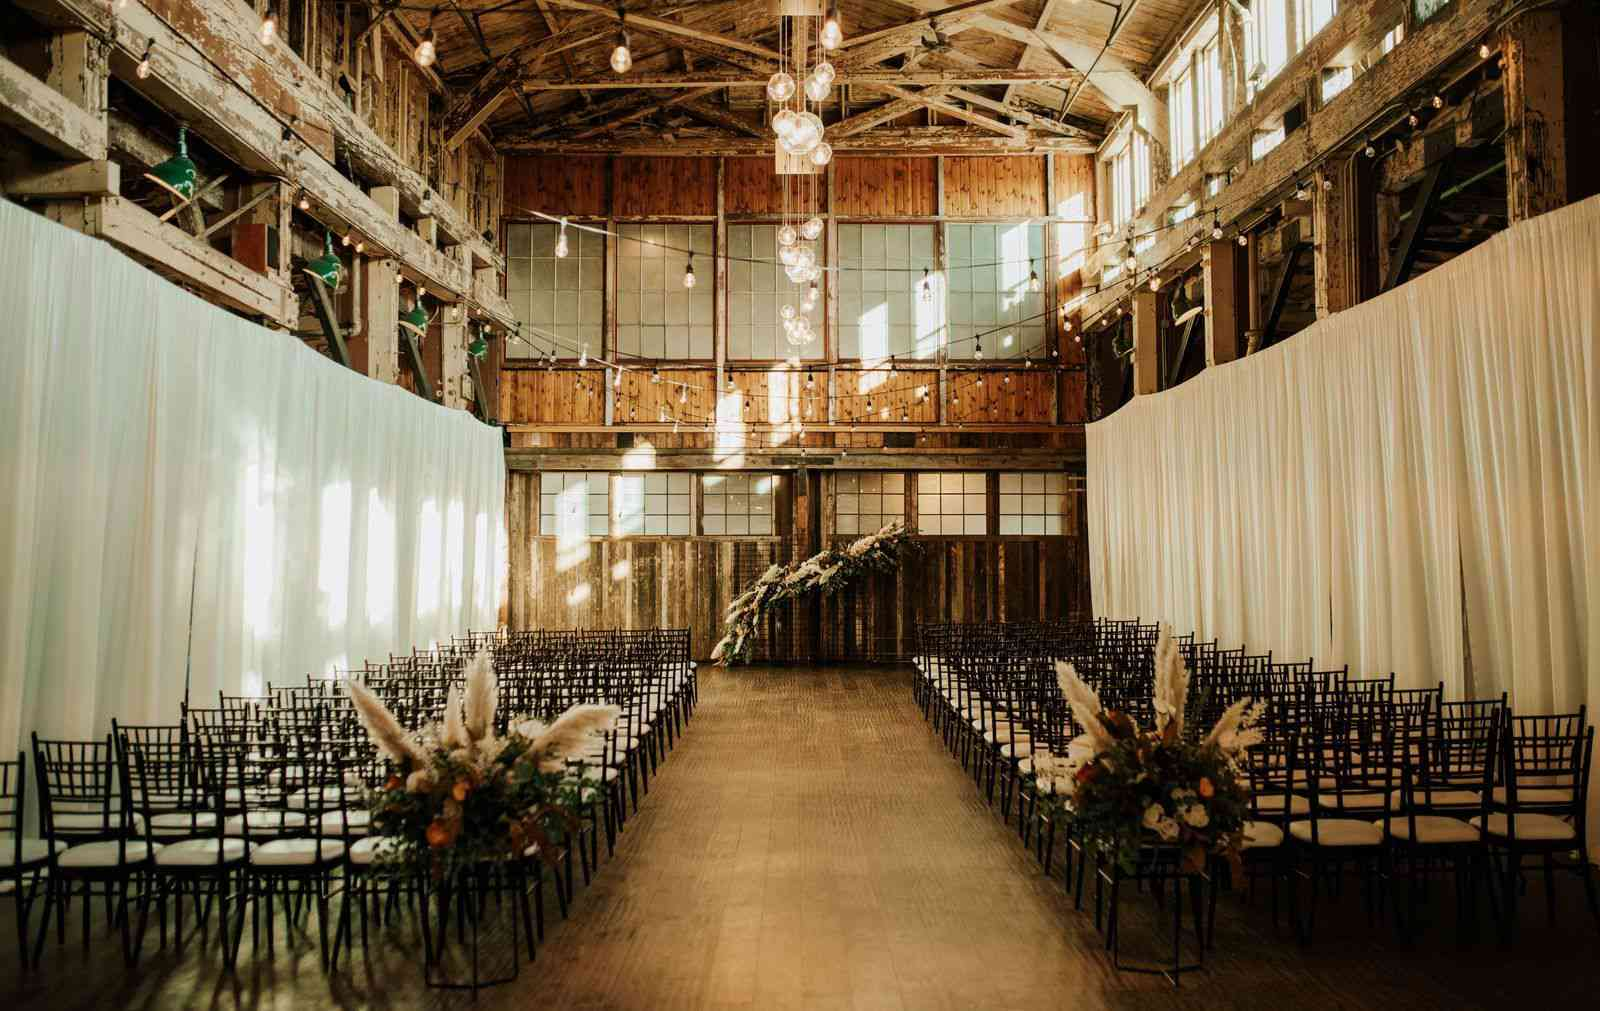 An indoor ceremony with floral installations at the start of the aisle to match the arch backdrop